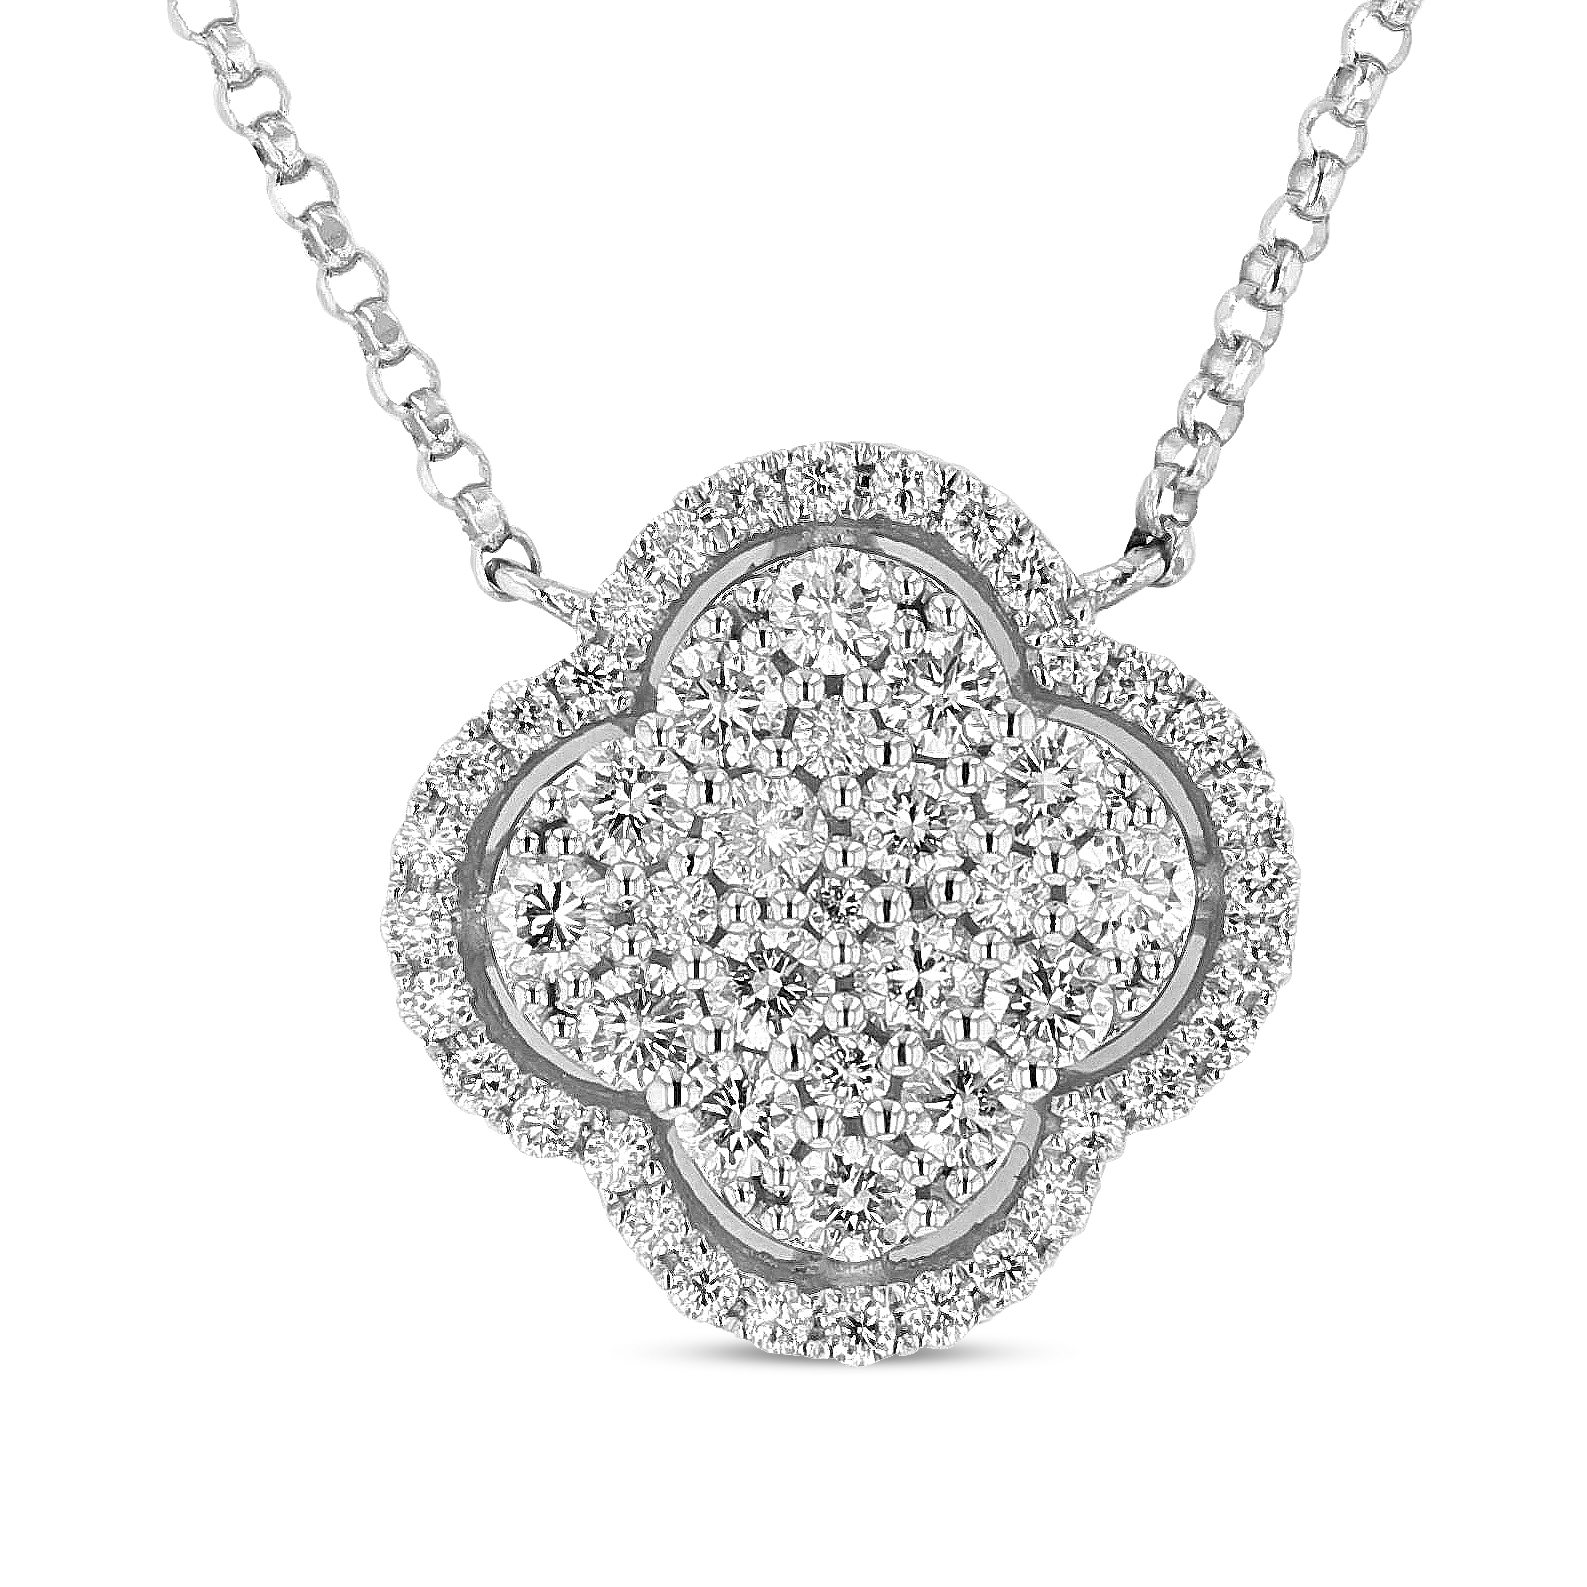 View 0.68ctw Diamond Clover Pendant in 18k White Gold